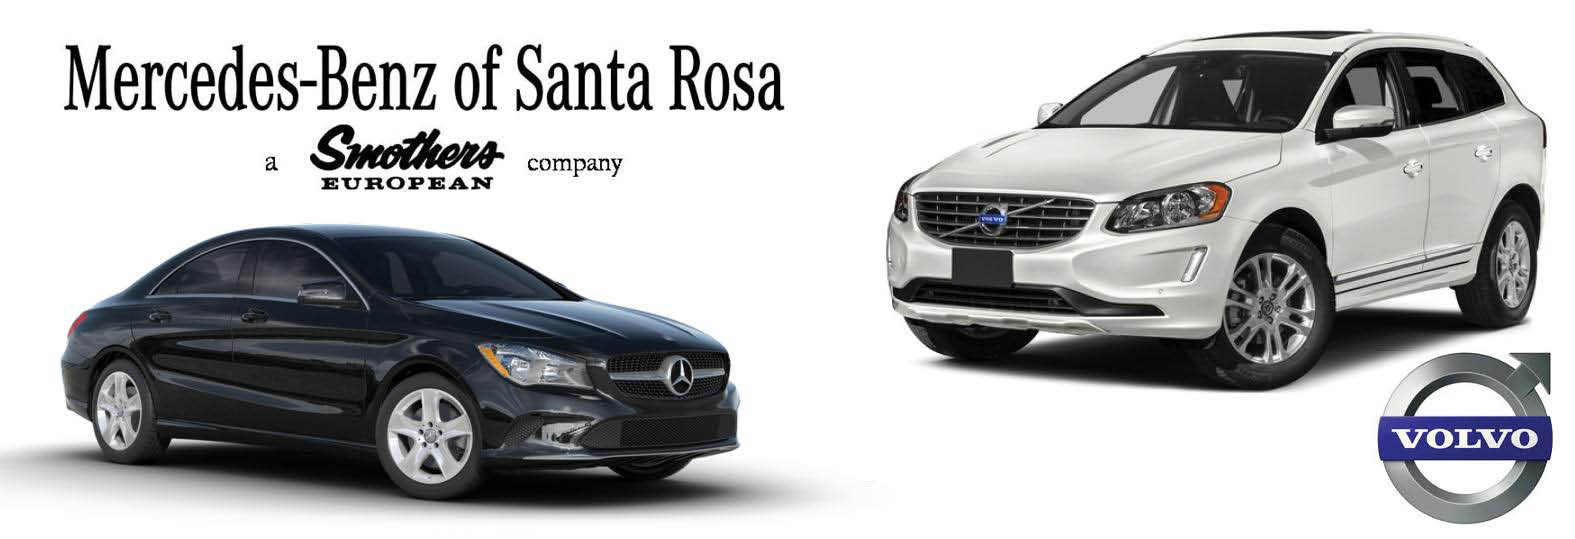 Smothers European volvo and mercedes-benz of santa rosa